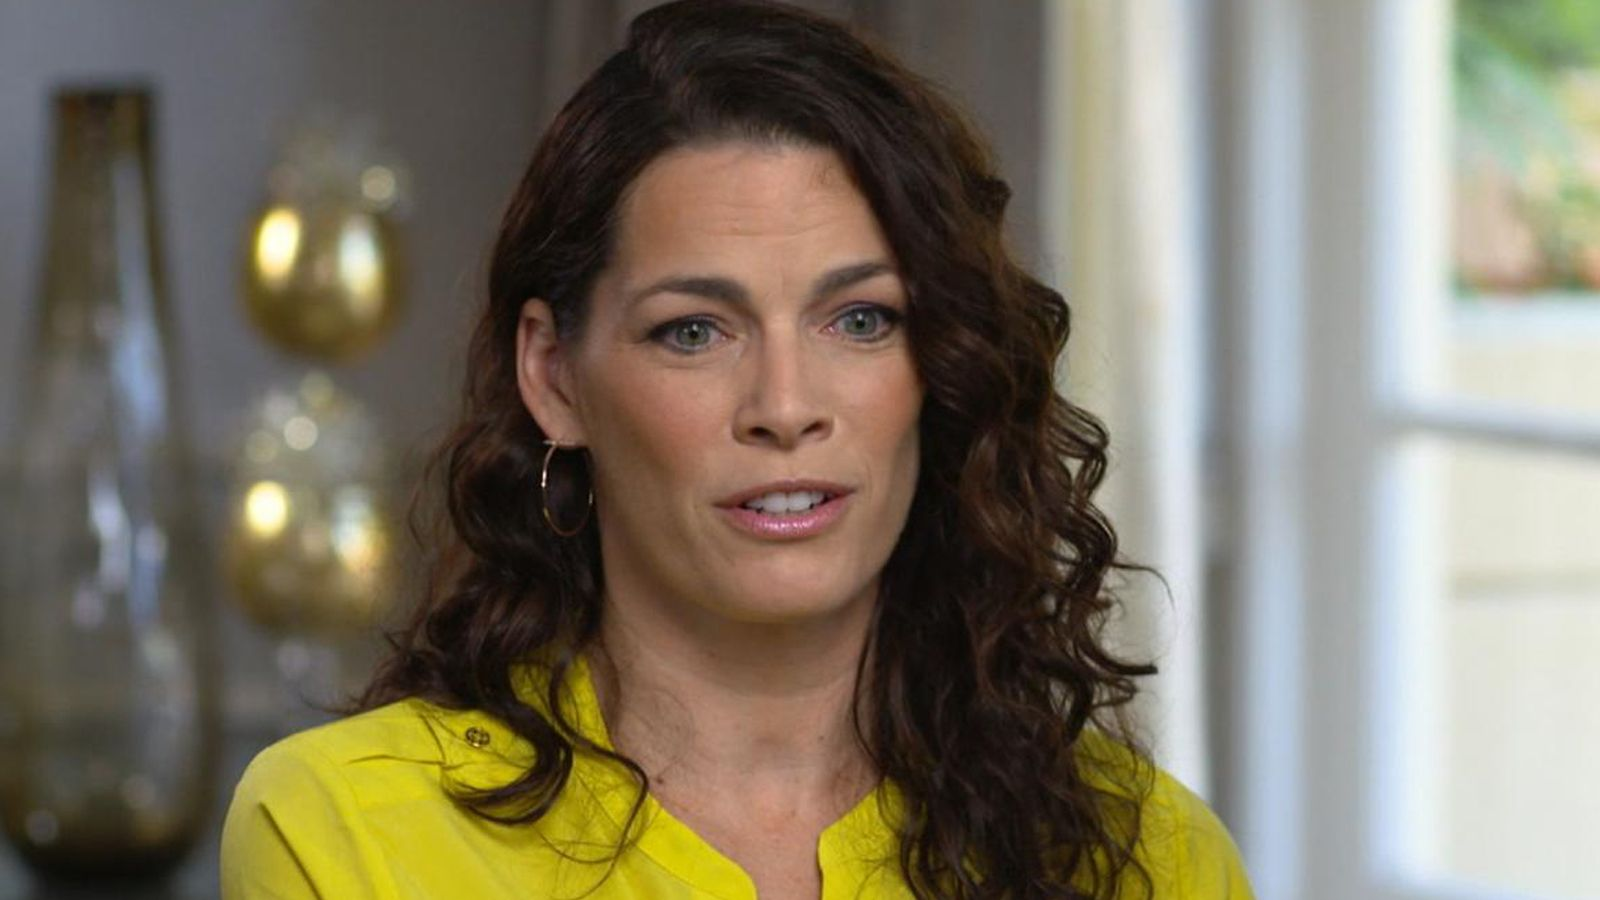 Nancy Kerrigan Videos at ABC News Video Archive at abcnews.com